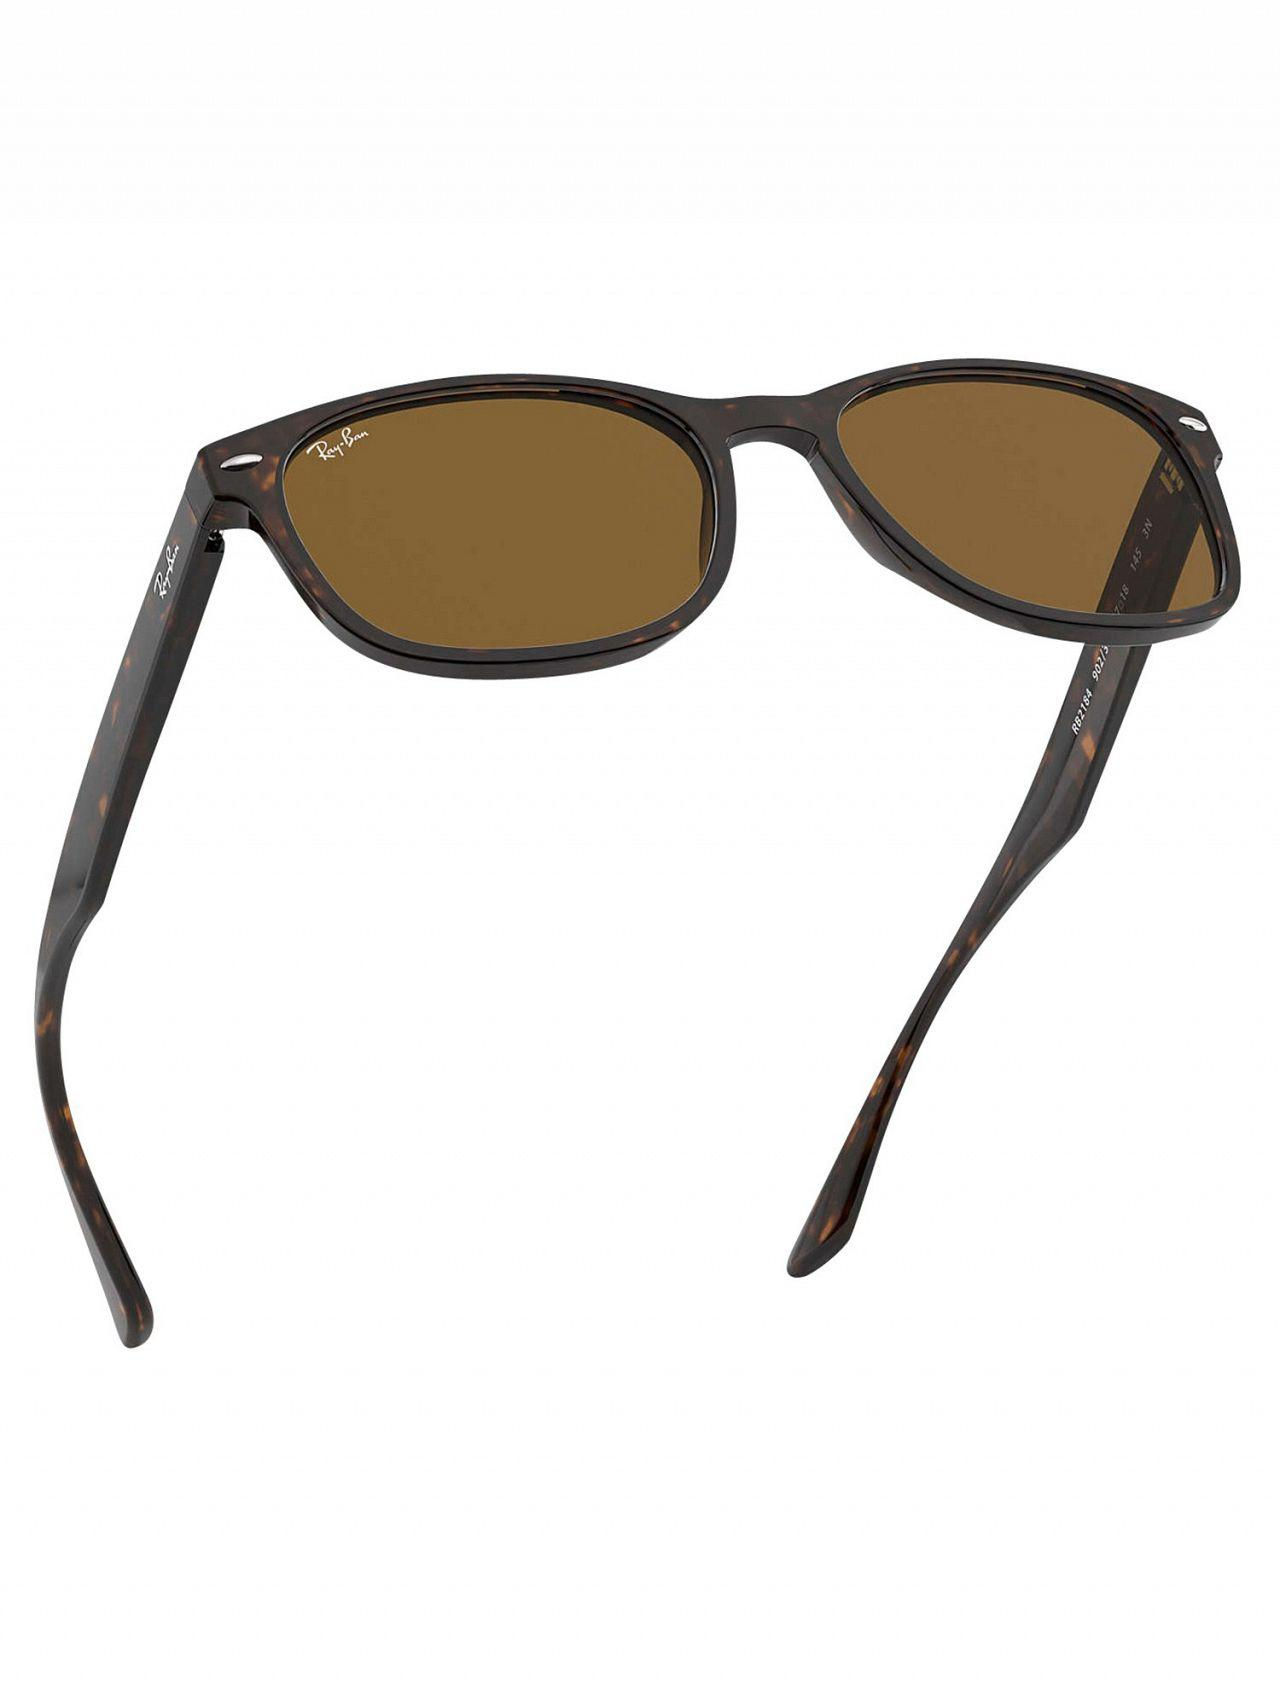 1df79291a3 Ray-Ban - Brown Tortoise Rb2184 Acetate Sunglasses for Men - Lyst. View  fullscreen